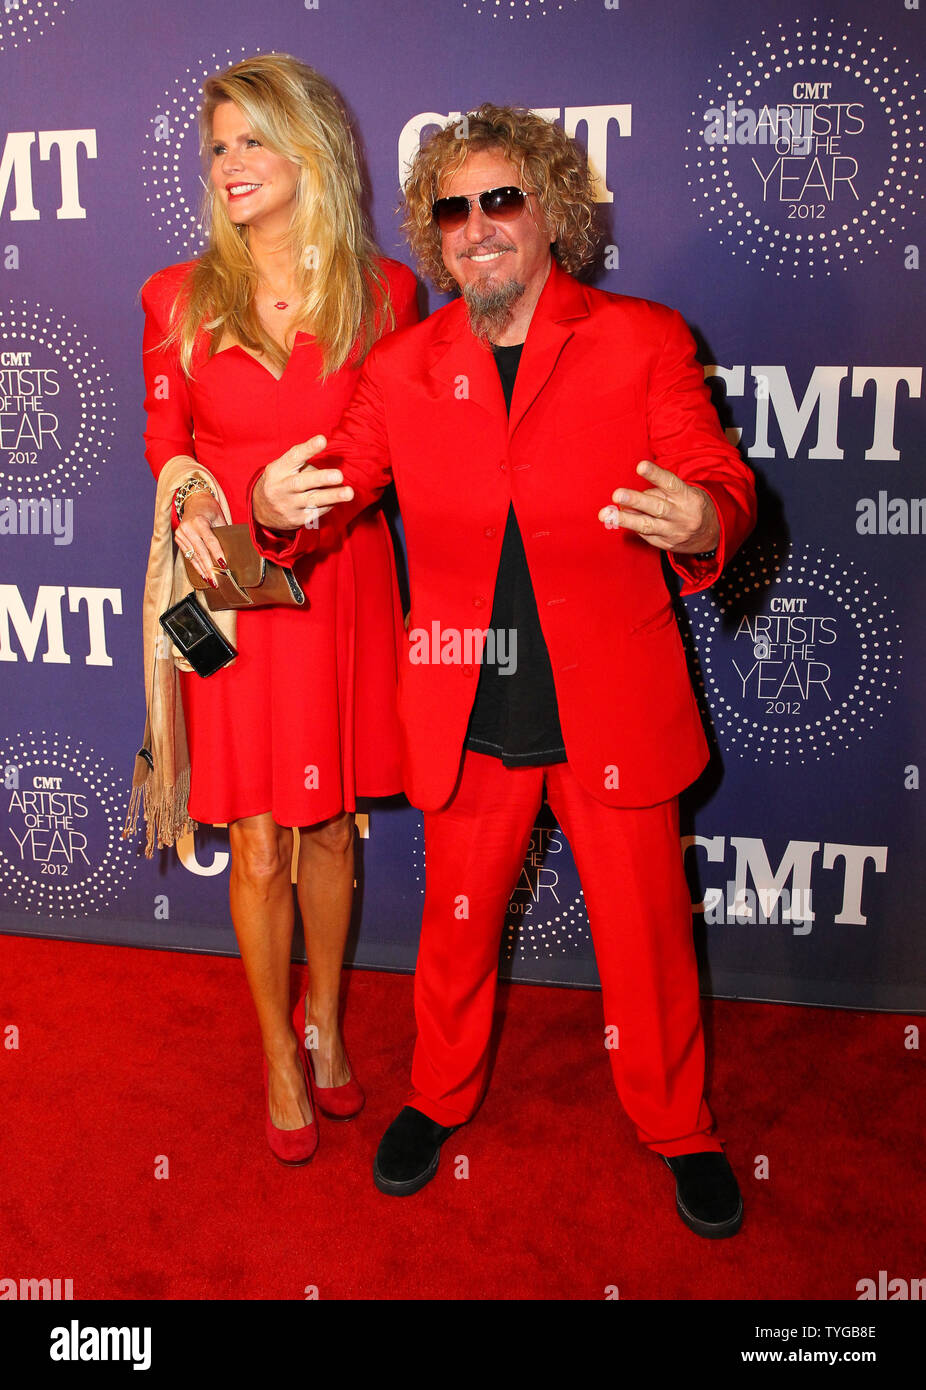 Sammy Hagar And Wife Kari Walk The Red Carpet At The 2012 Cmt Artists Of The Year Awards In Franklin Tennessee On December 3 2012 Upi Terry Wyatt Stock Photo Alamy